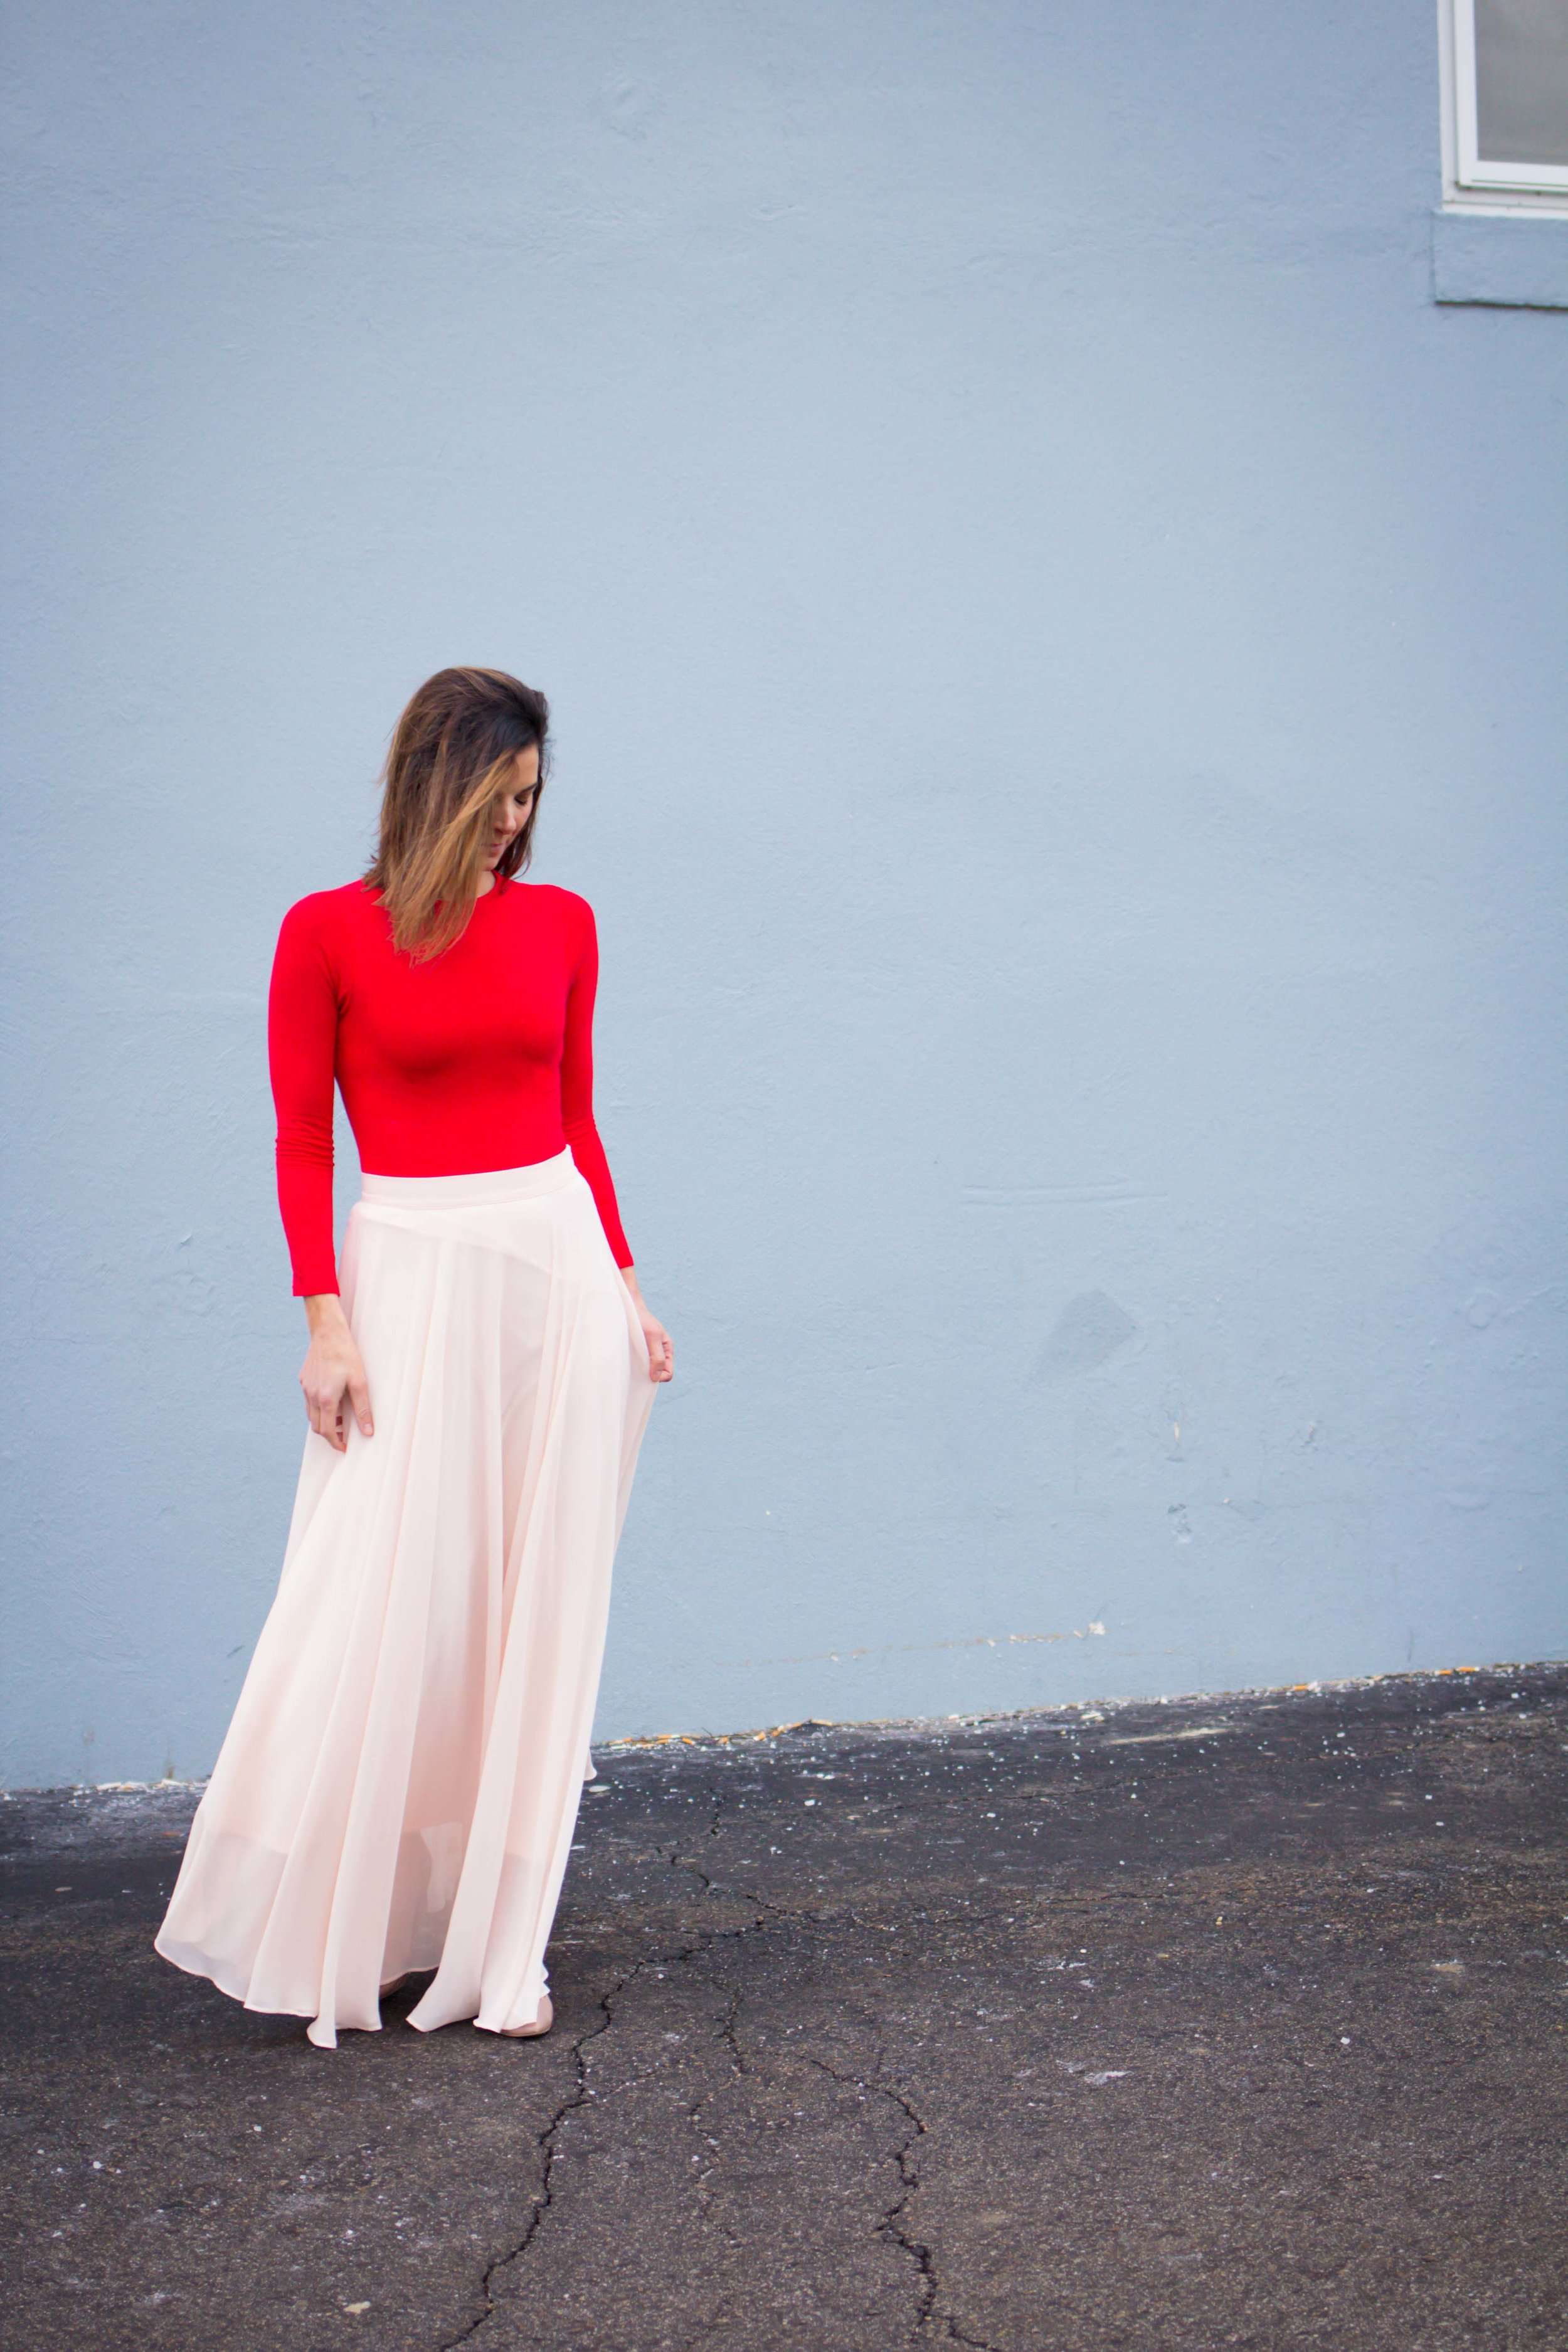 Date Night Outfits - Valentine's Day Outfits - Pink and Red Outfits-Fashion for Women - Maxi Skirt Outfits  heartandseam.com  #heartandseam